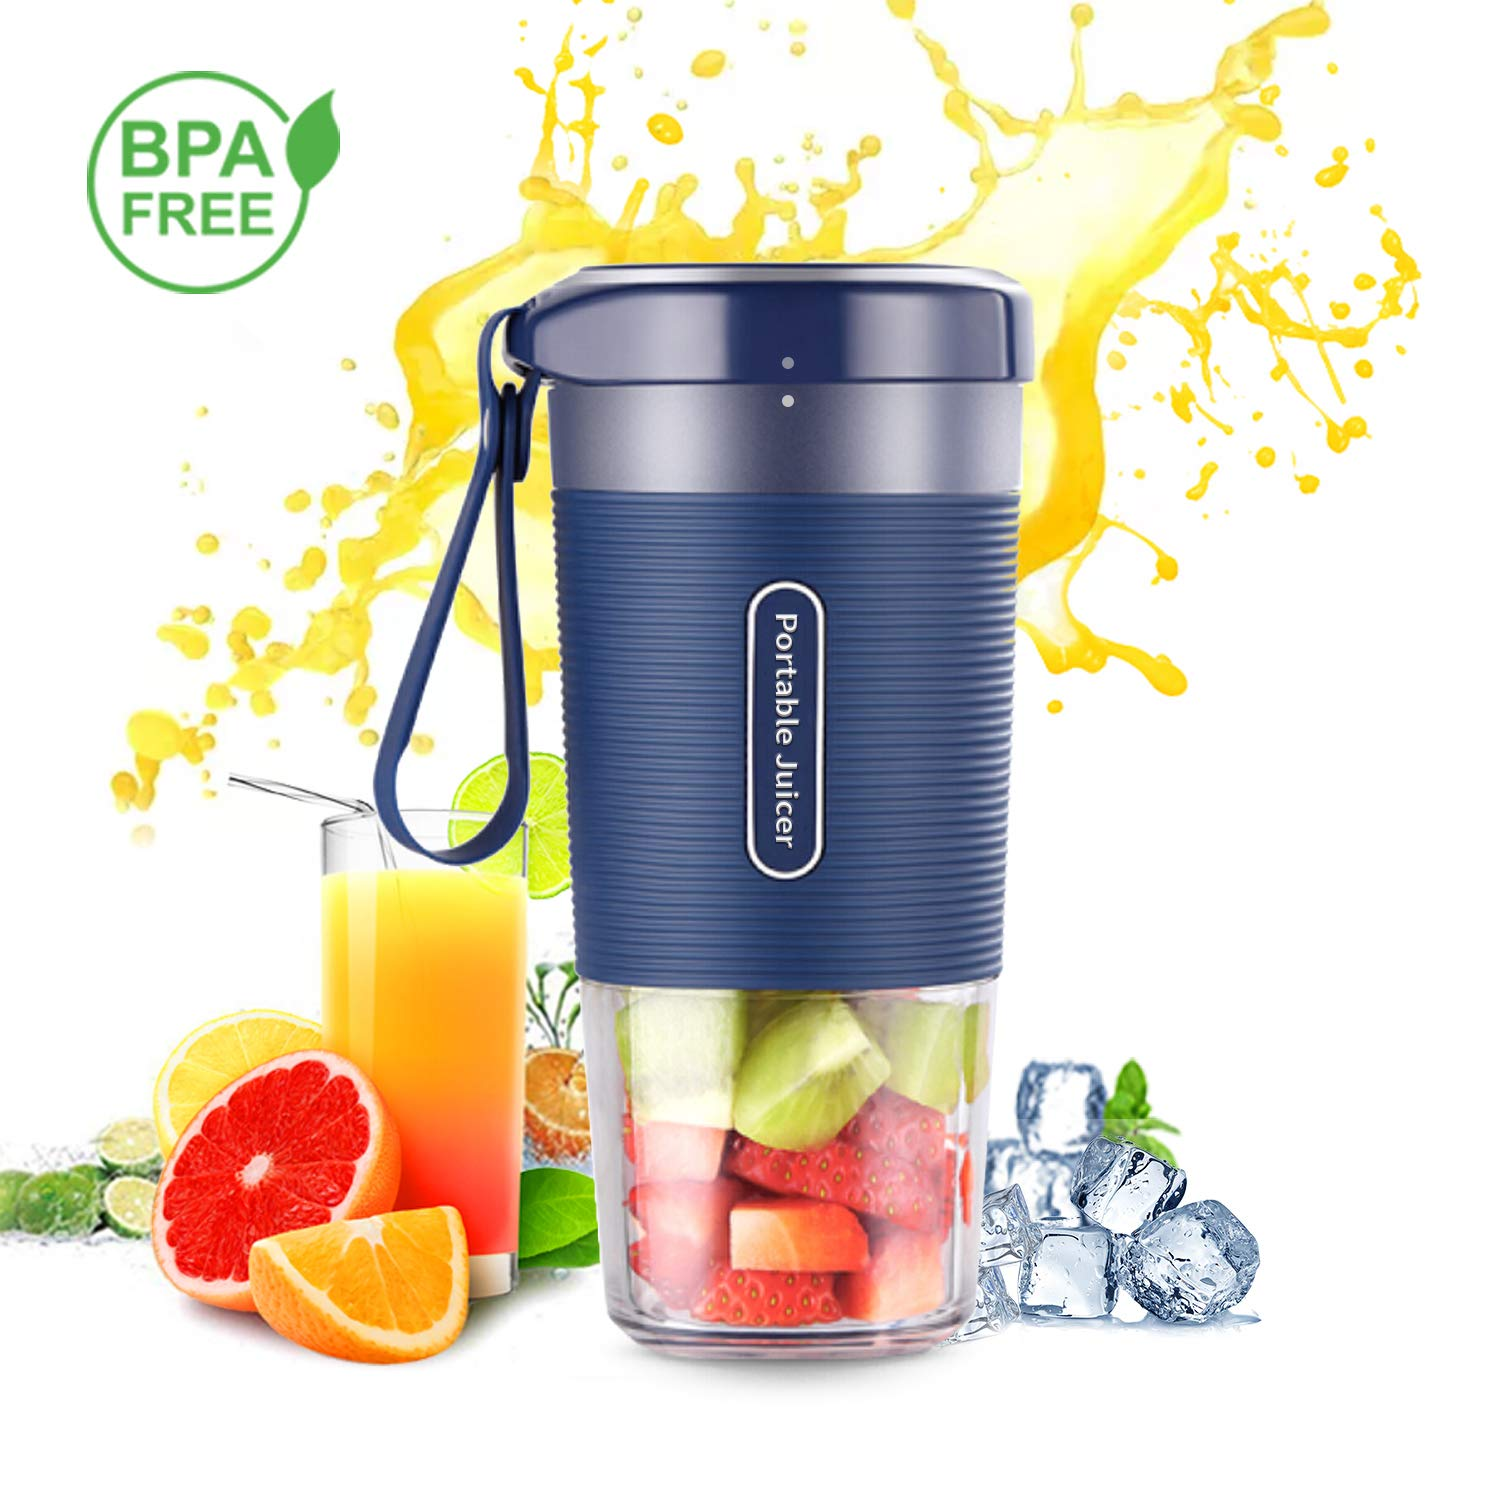 Portable Blender,DOUHE Cordless Mini Personal Blender Small Smoothie Blender USB Fruit Juicer Mixer For Home Outdoor Travel Office - USB Rechargeable,IP68 Waterproof,BPA Free